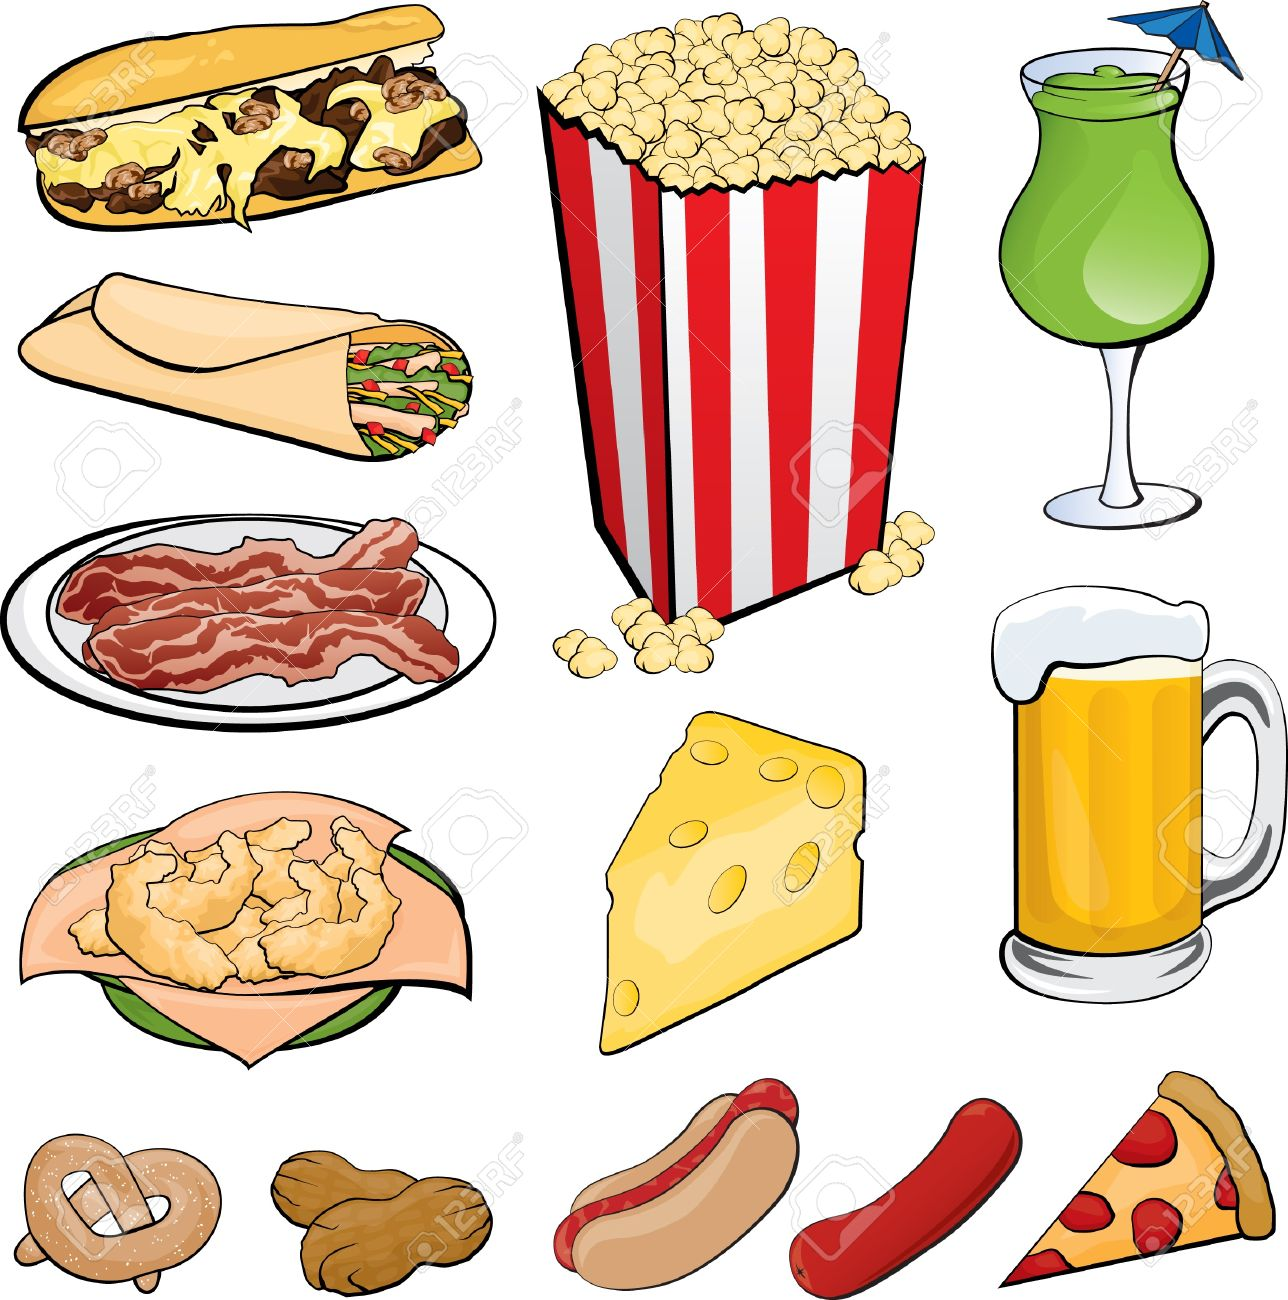 Snack Food Cliparts Free Download Clip Art.